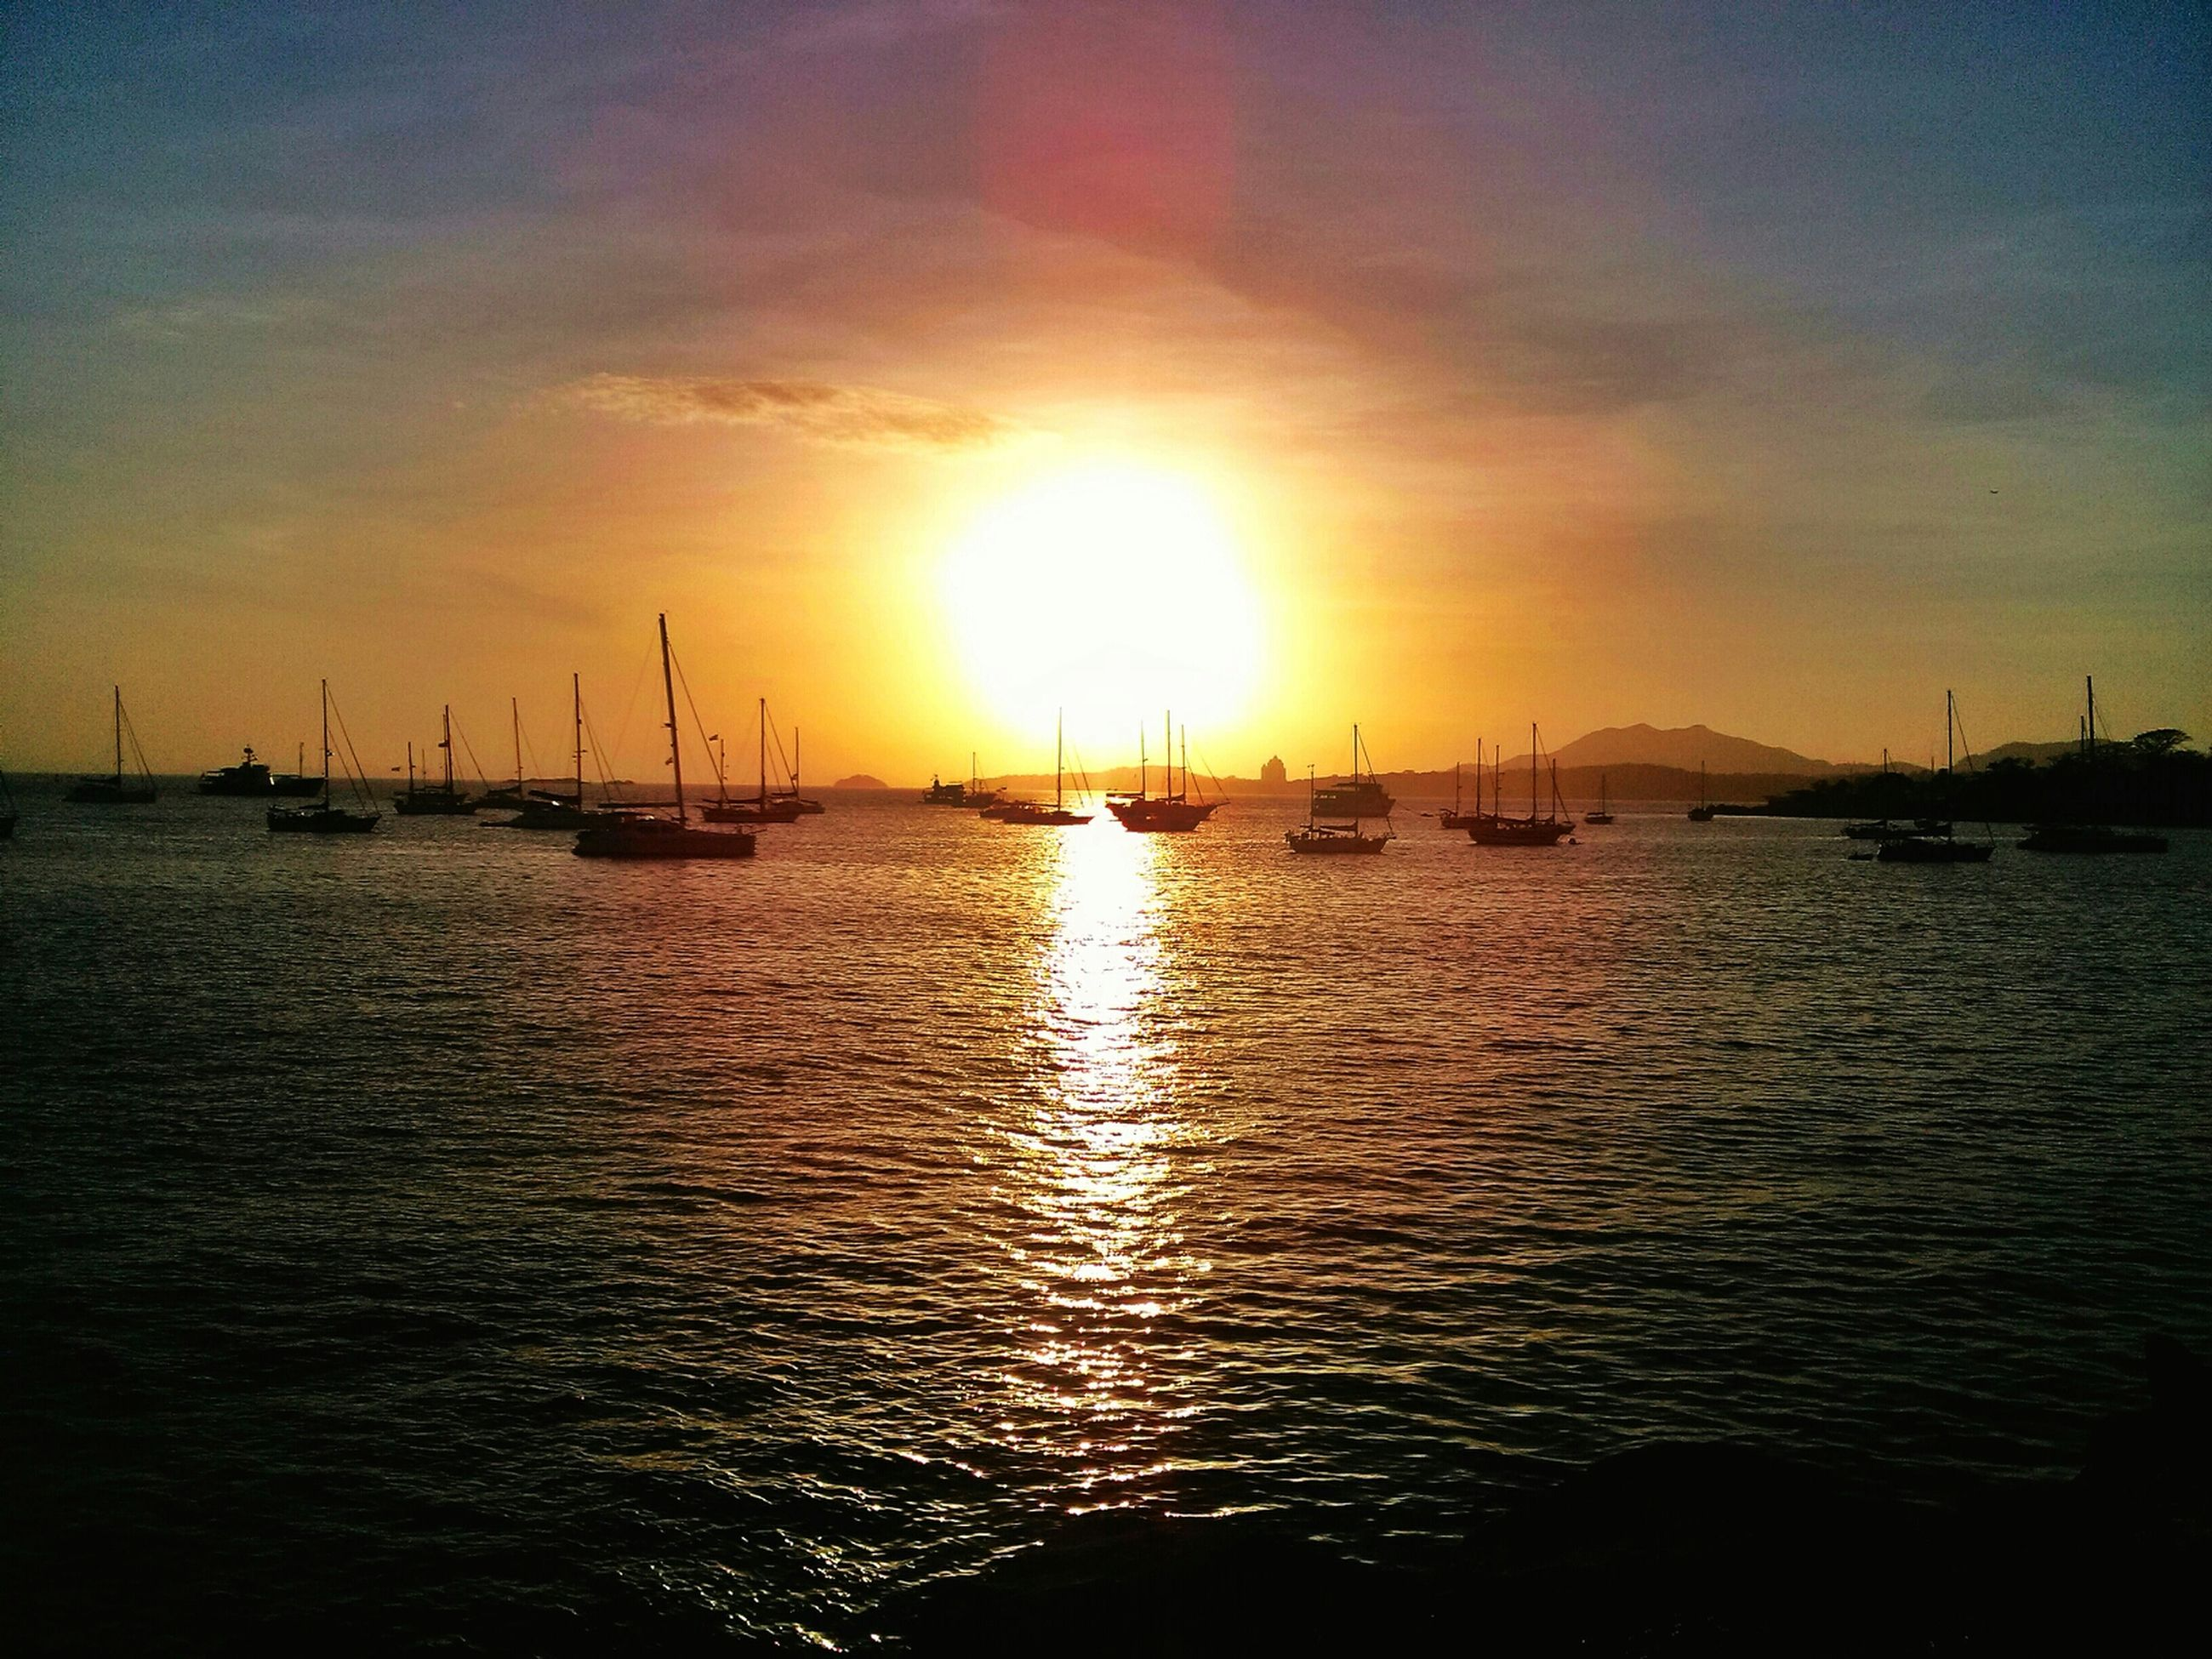 sunset, water, sea, sun, nautical vessel, sky, waterfront, transportation, scenics, orange color, silhouette, tranquil scene, beauty in nature, tranquility, boat, mode of transport, rippled, nature, reflection, sunlight